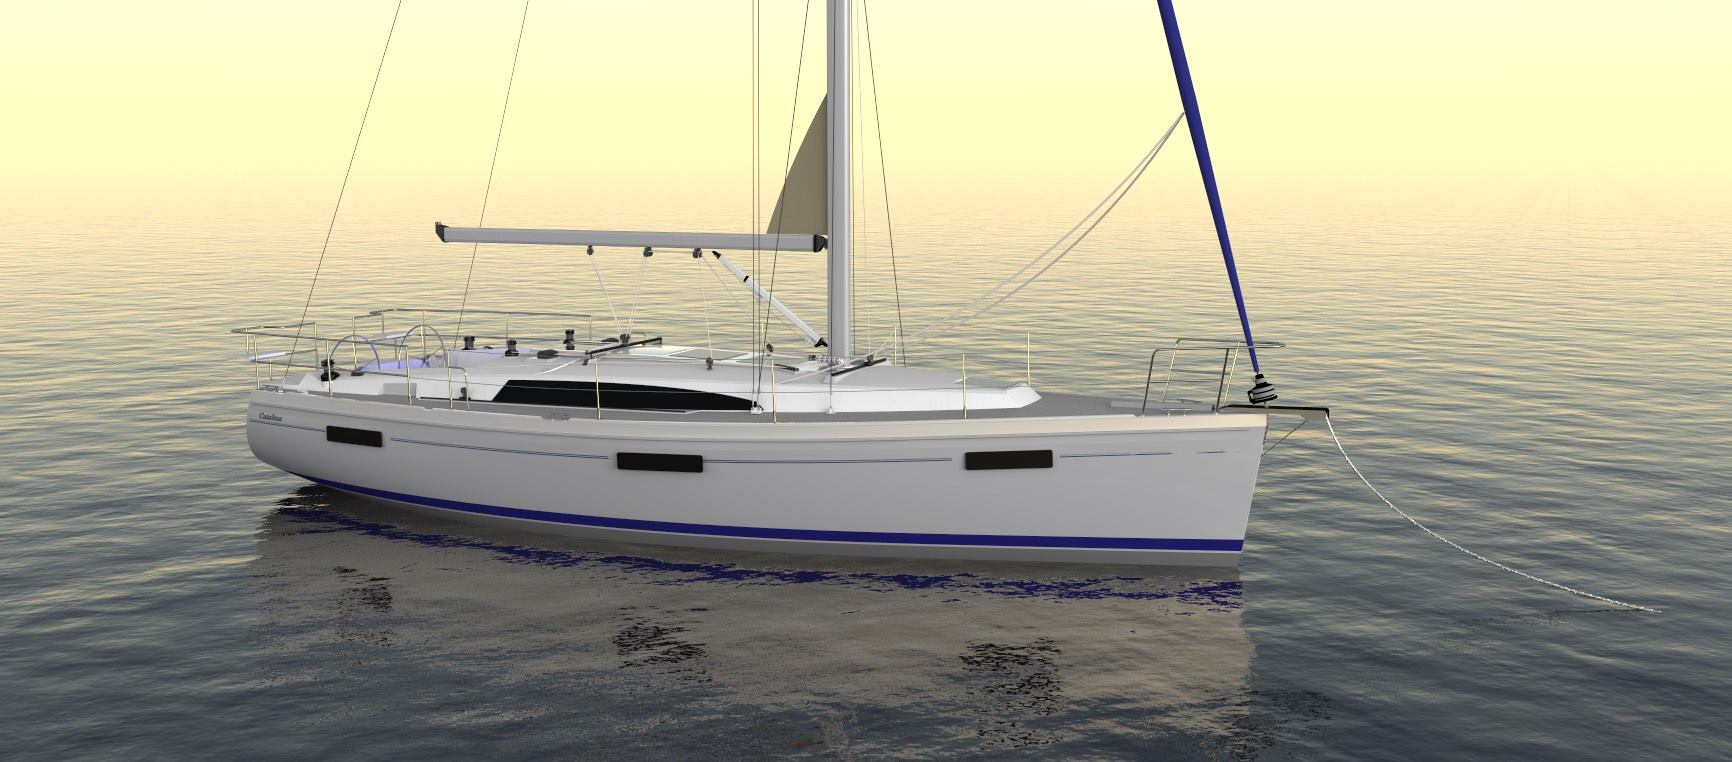 Catalina Yachts – Deltaville Yachting Center and Chesapeake